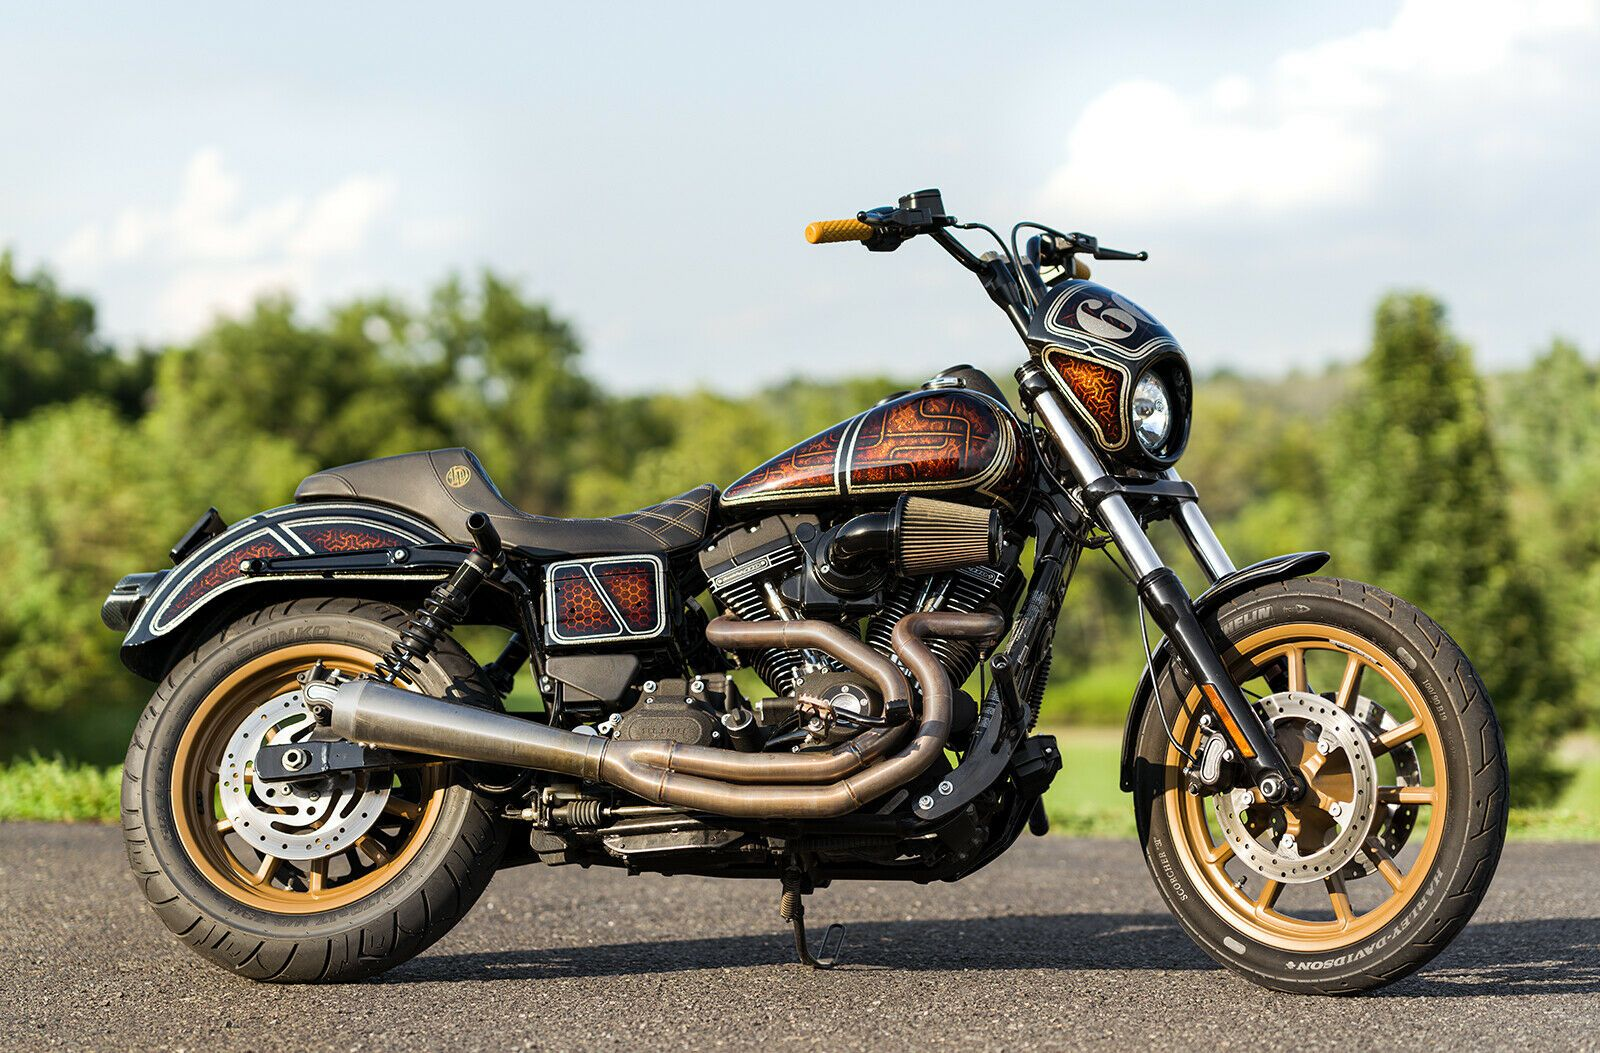 2016 Harley Davidson Dyna 2016 Harley Davidson Dyna Low Rider S Fxdls Custom Paint Thousands In Upgrades Harley Davidson Dyna Harley Davidson Harley